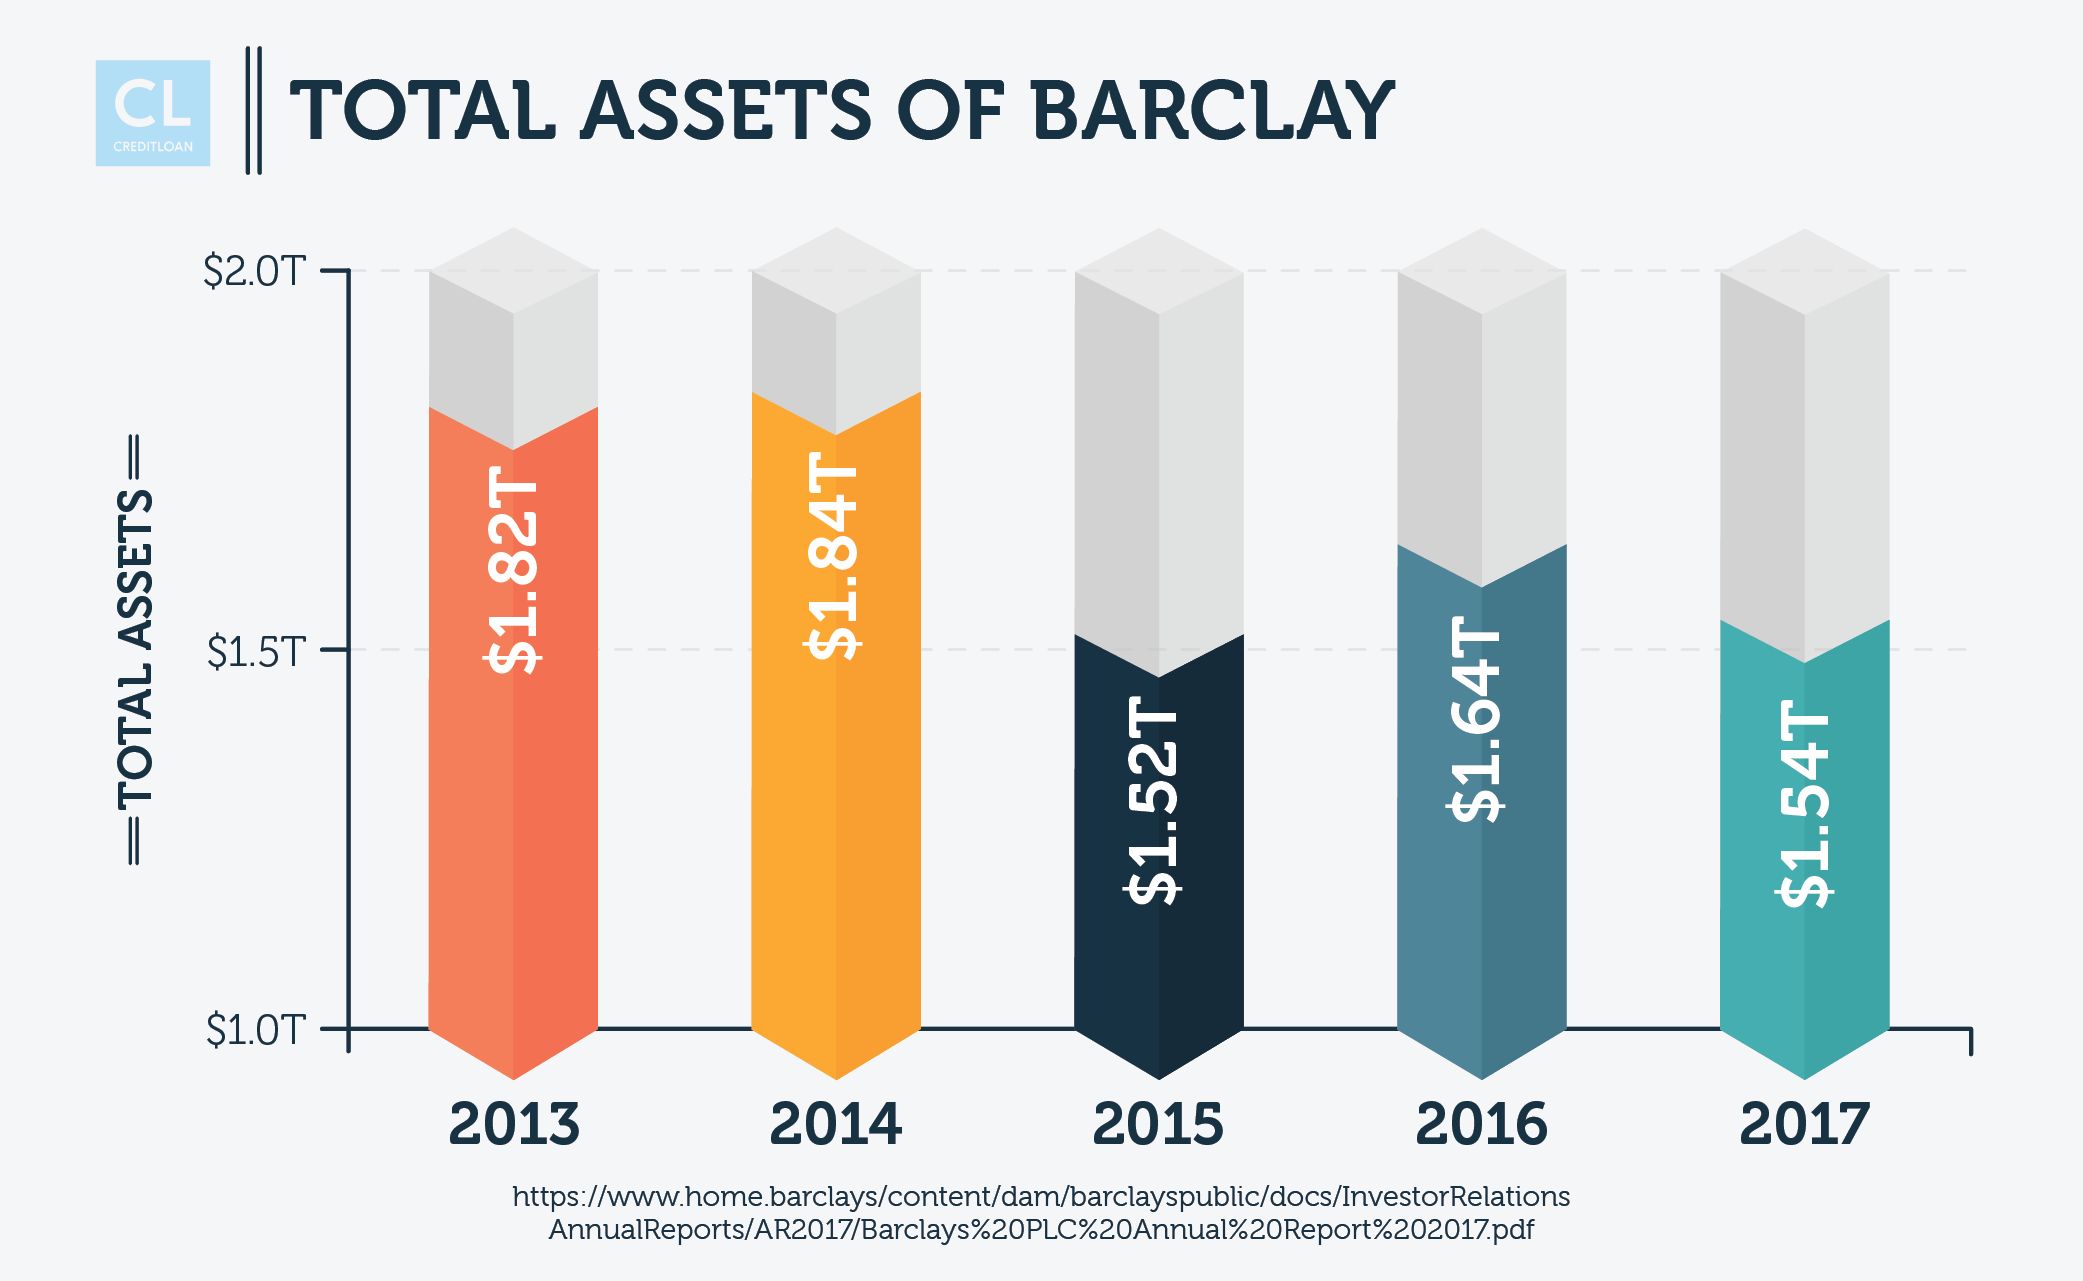 Total Assets of Barclay from 2013-2017